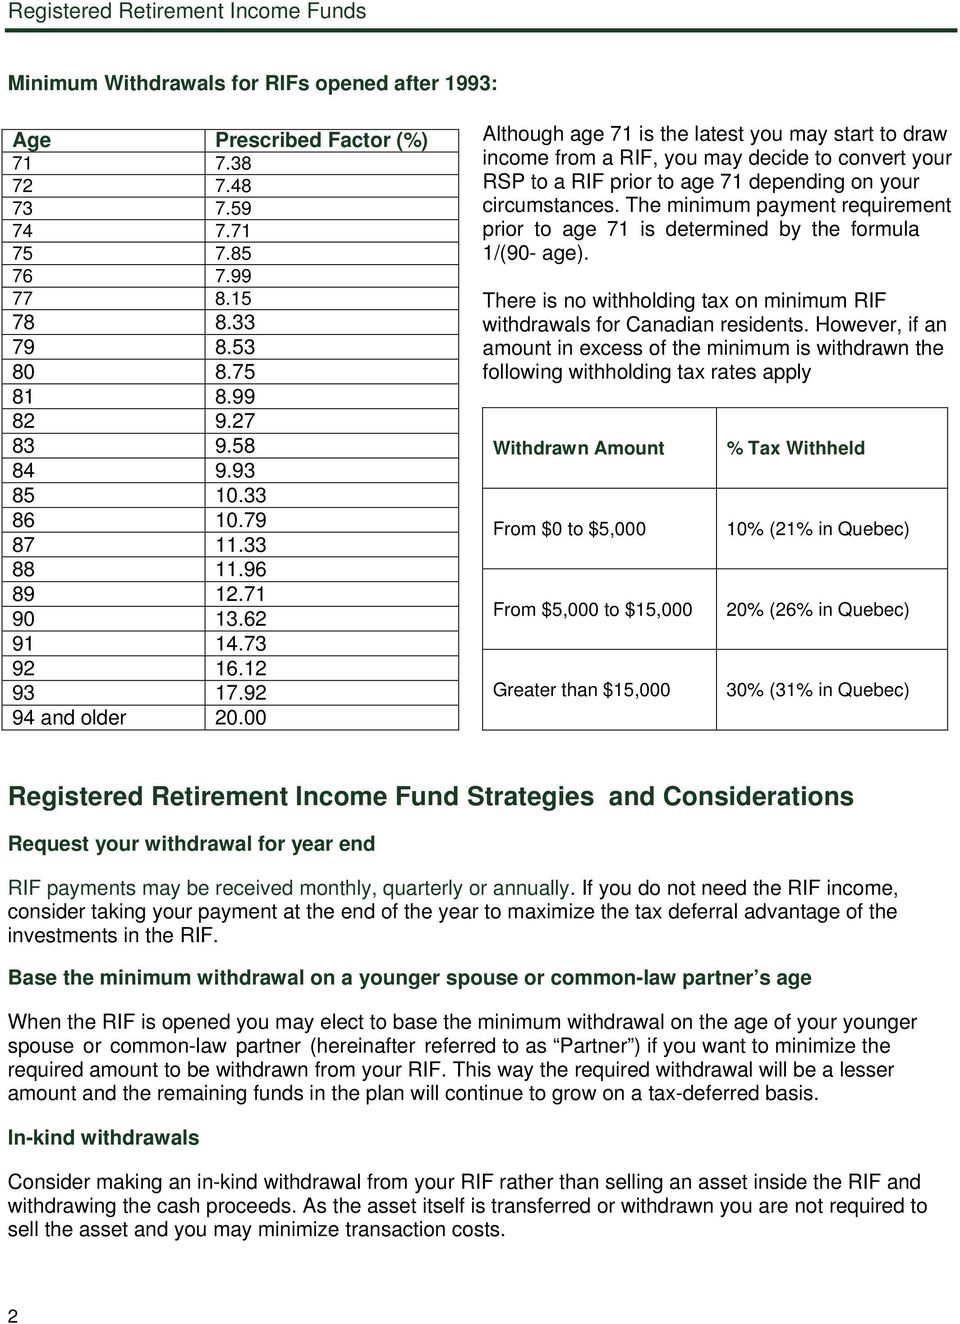 00 Although age 71 is the latest you may start to draw income from a RIF, you may decide to convert your RSP to a RIF prior to age 71 depending on your circumstances.